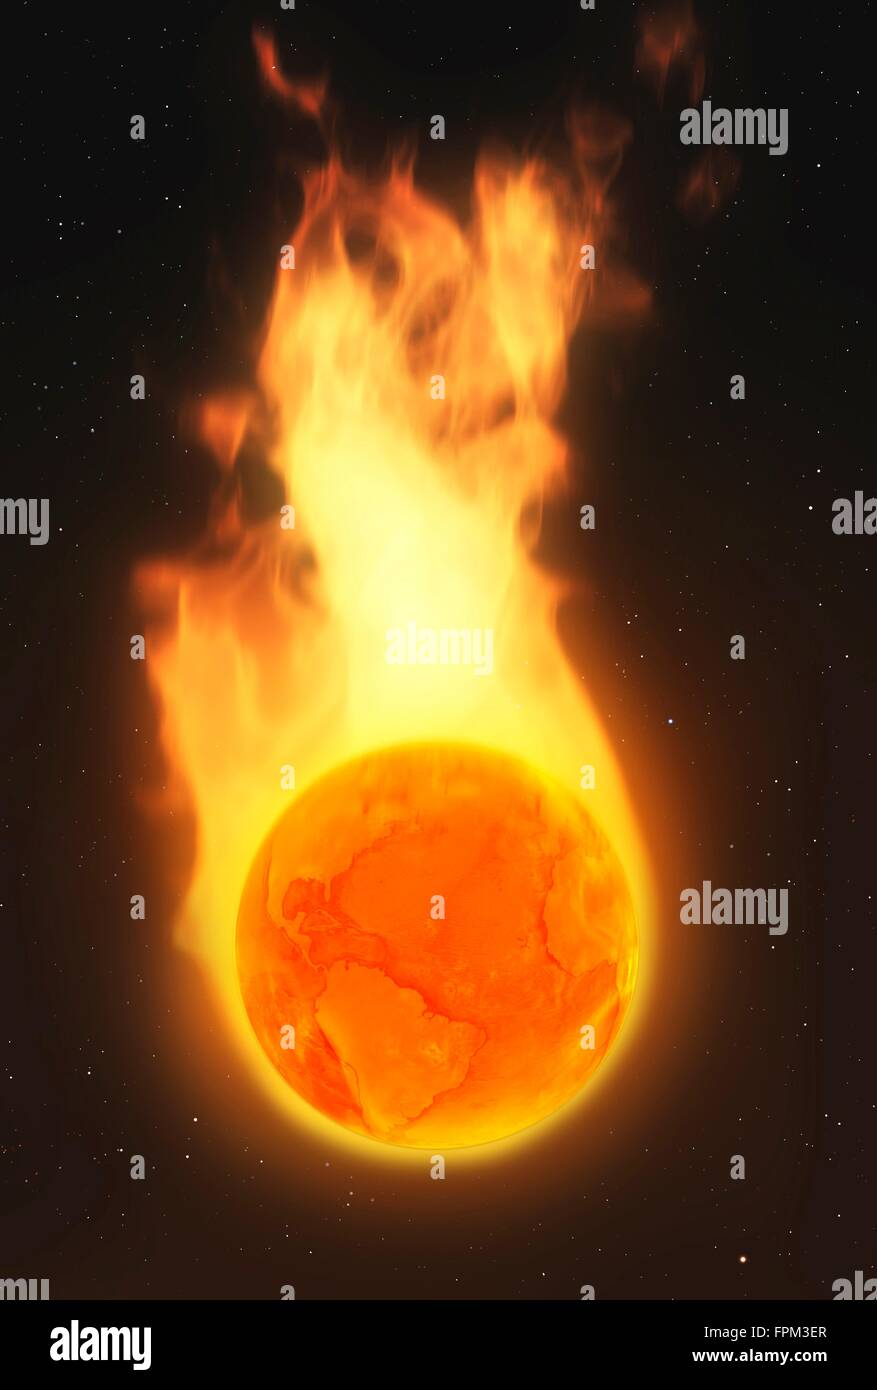 Global warming. C ceptual illustrati  of an Earth globe in flames representing climate change such as global warming - Stock Image